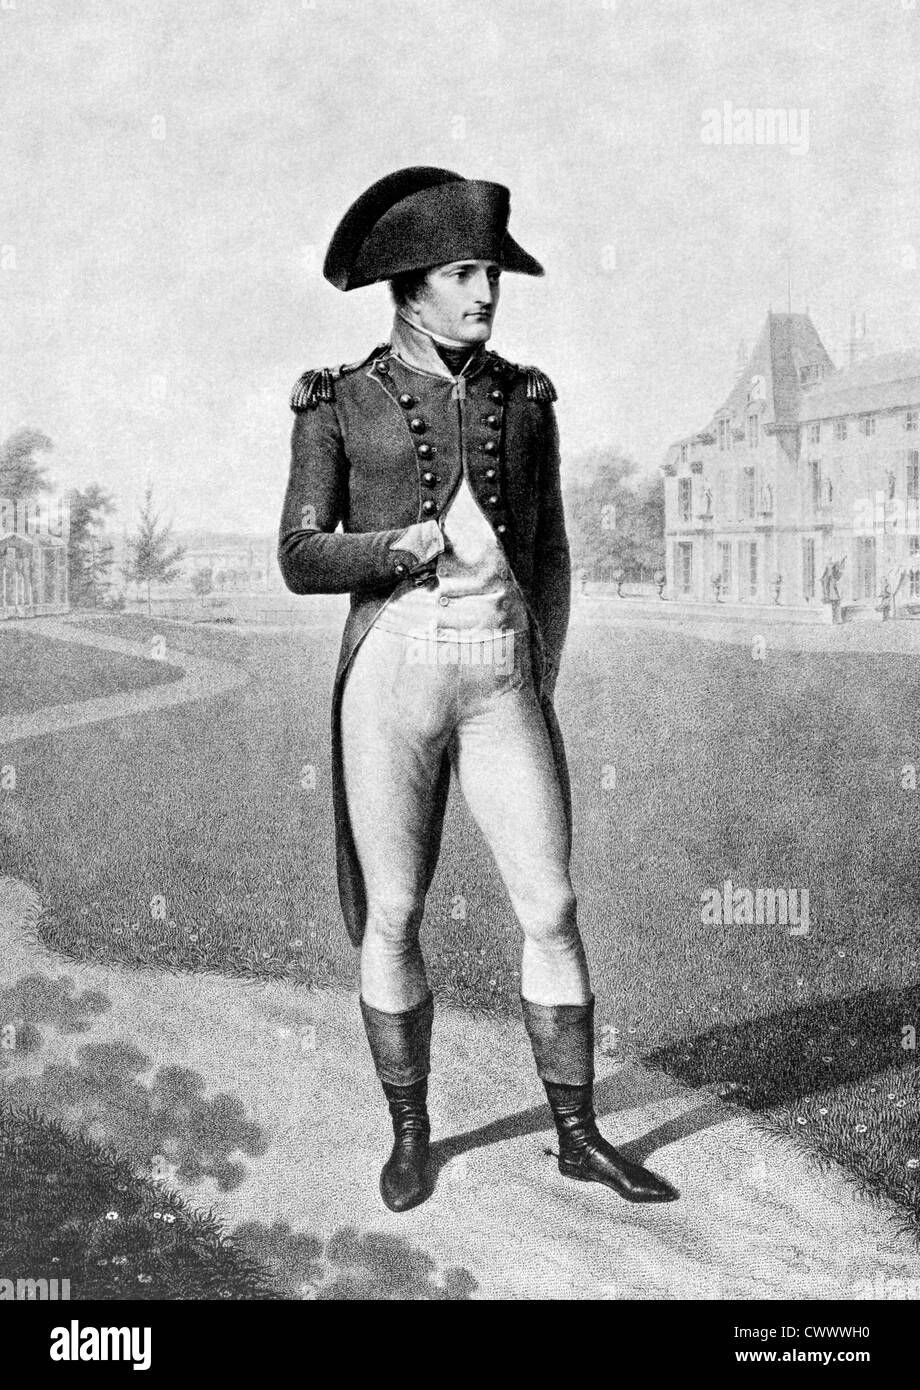 Napoleon Bonaparte (1769-1821) on antique print from 1899. Emperor of France. One of the most brilliant individuals - Stock Image